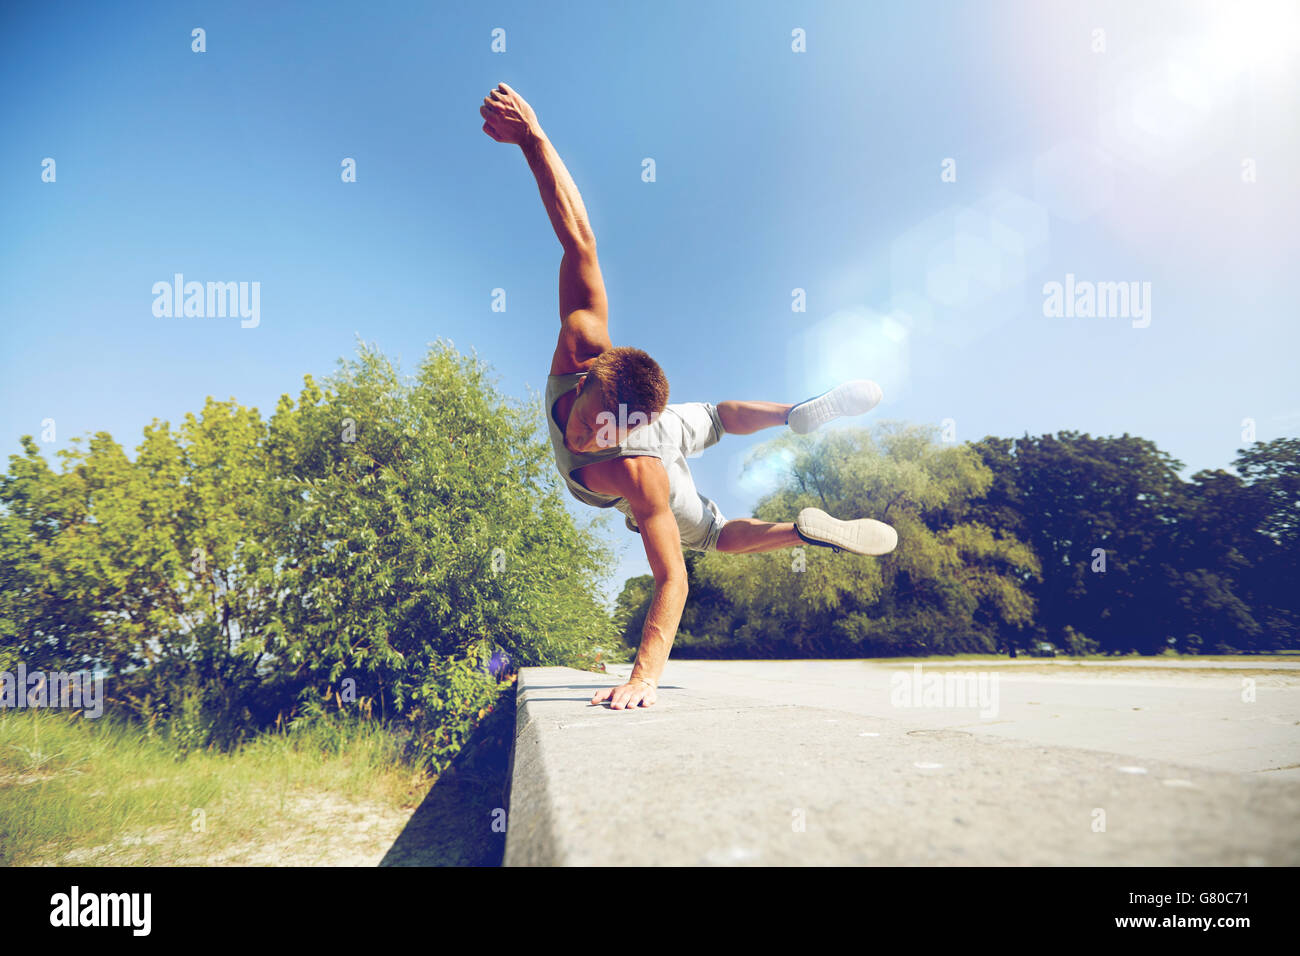 sporty young man jumping in summer park - Stock Image